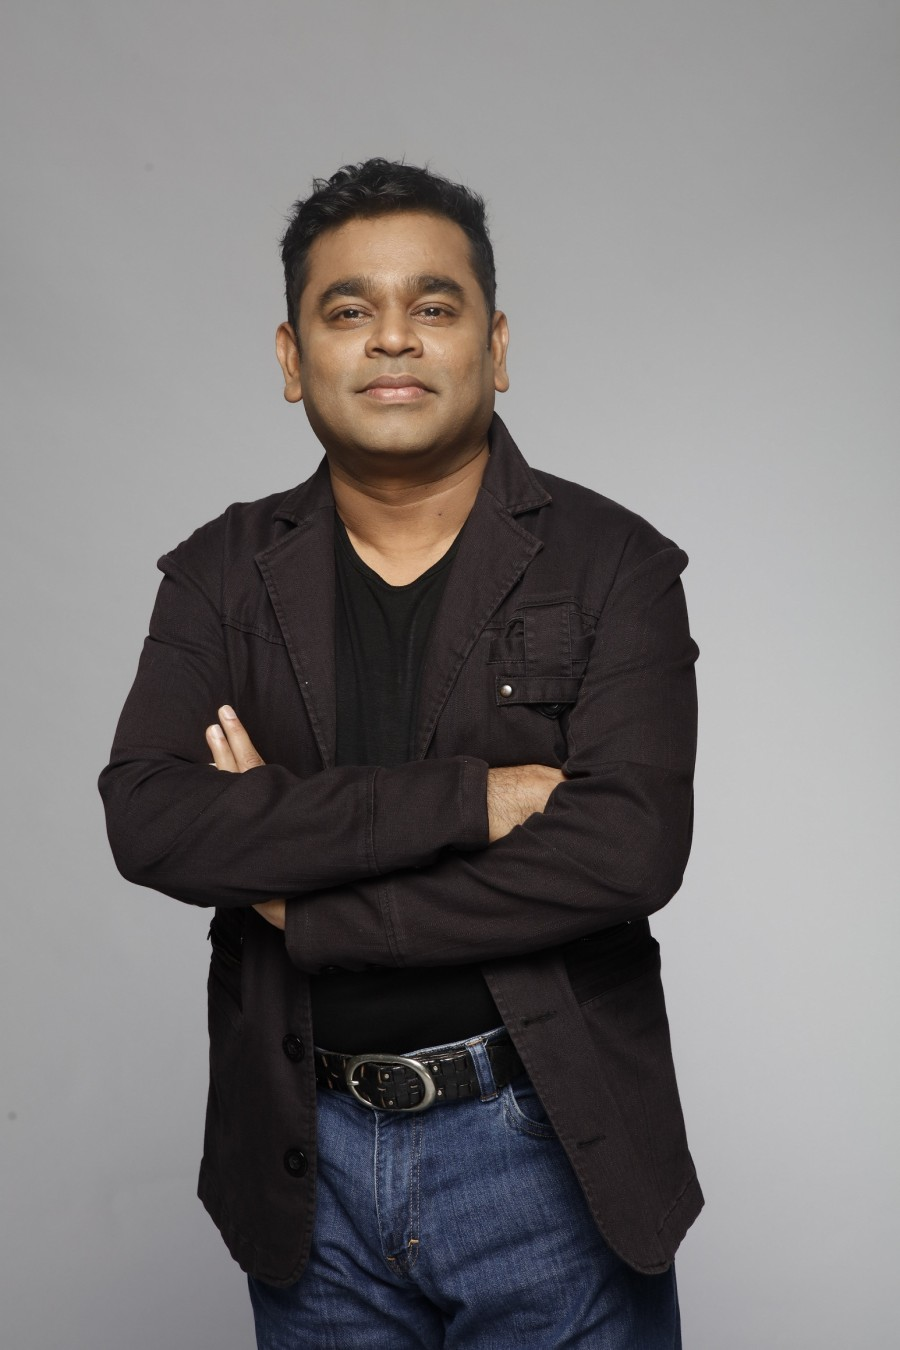 AR Rahman,AR Rahman to Live 'Jam',YouTube Stars at Mumbai Concer,YouTube Stars,Samir Bangara,Live Concert with  quotes from music legend and Qyuki Co-founder AR Rahman